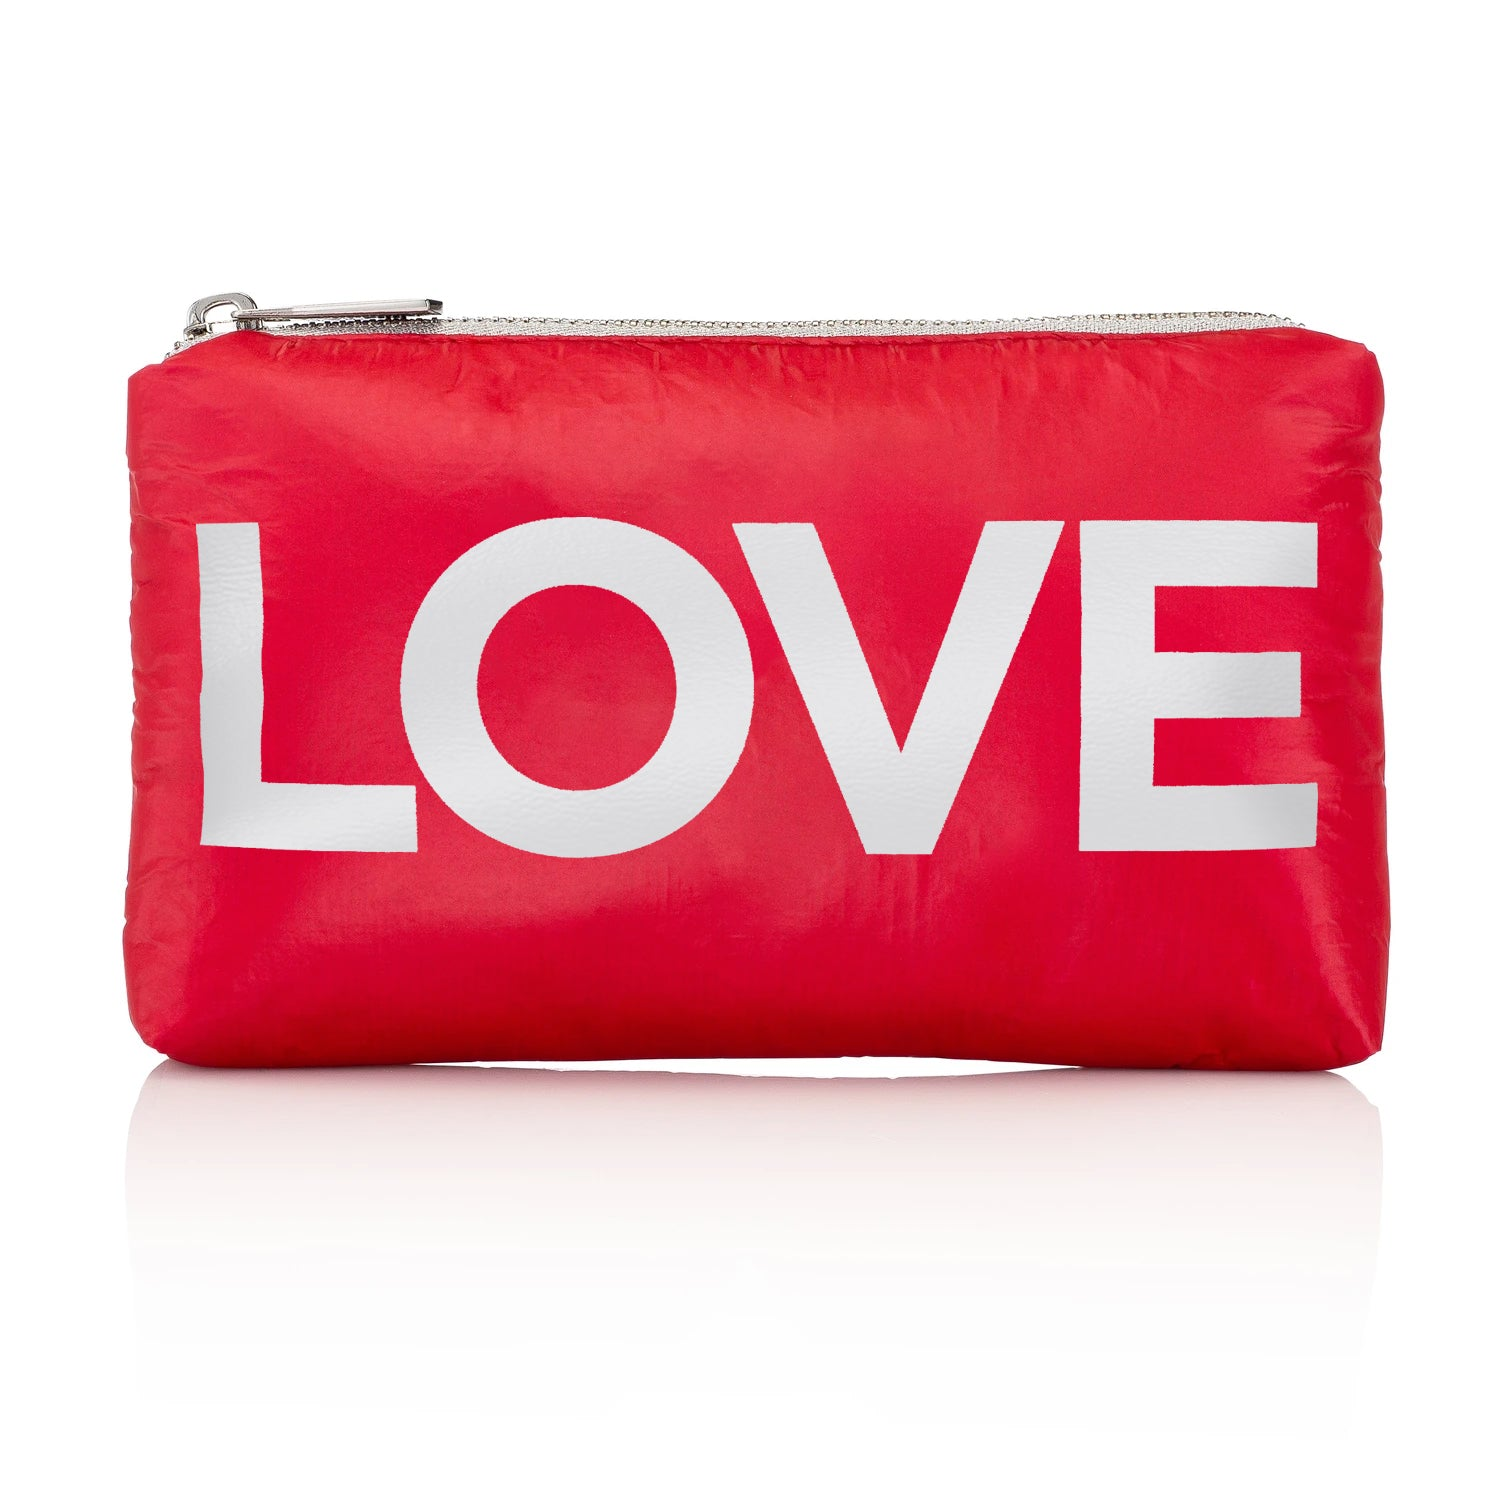 "Mini Padded Pack - Chili Pepper Red with Metallic Silver ""LOVE"""